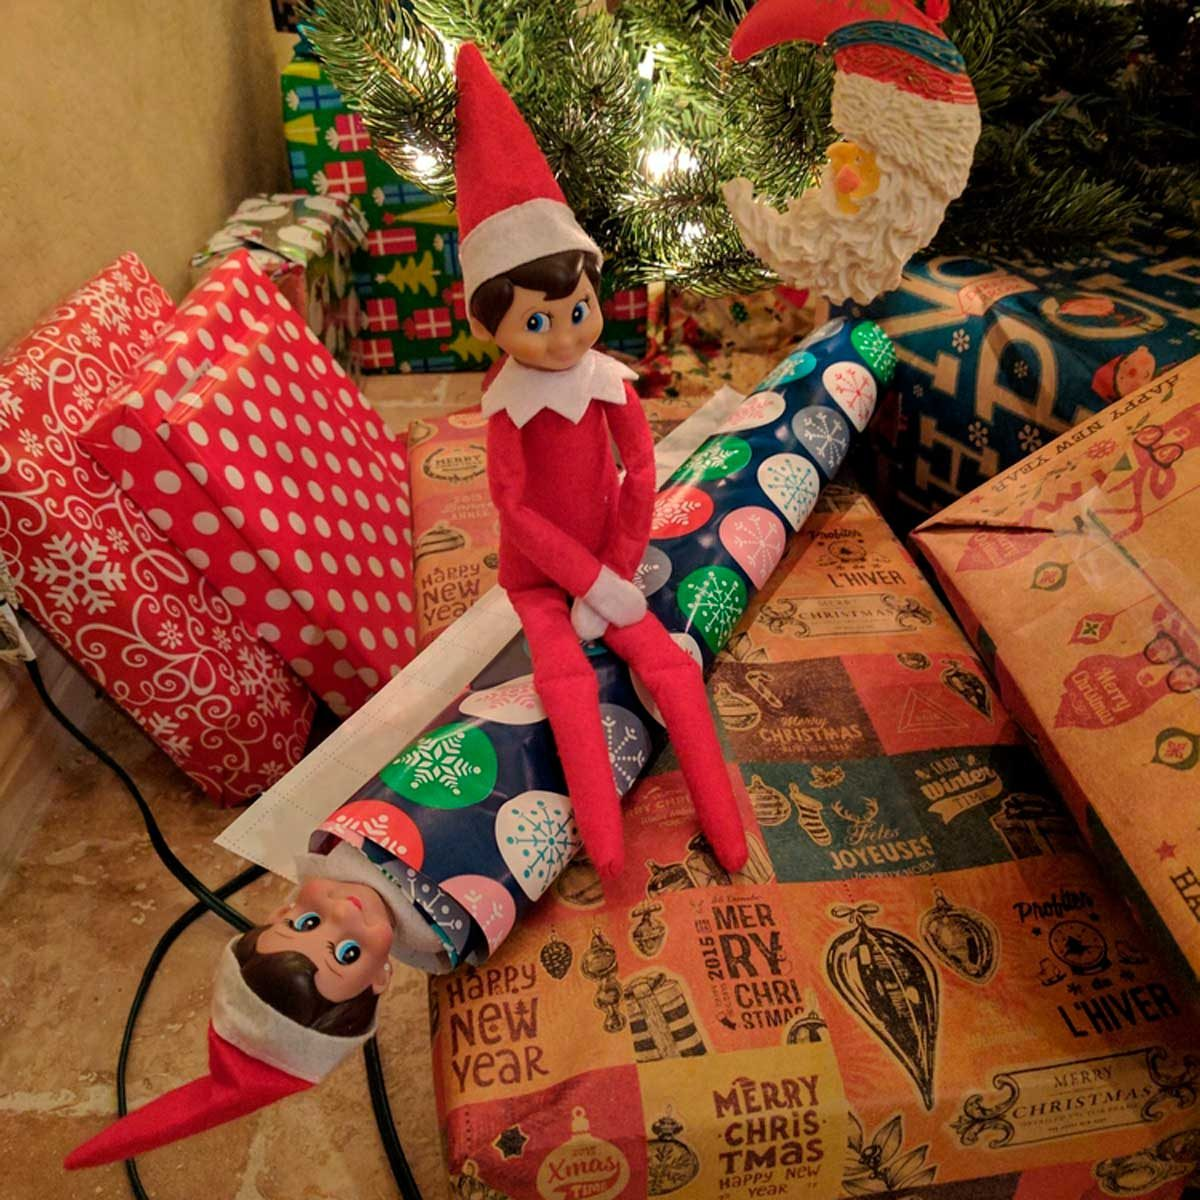 ELF CHRISTMAS EVE BOX LARGE ELVES BRIGHT GIFT WRAPPING XMAS KIDS FUN